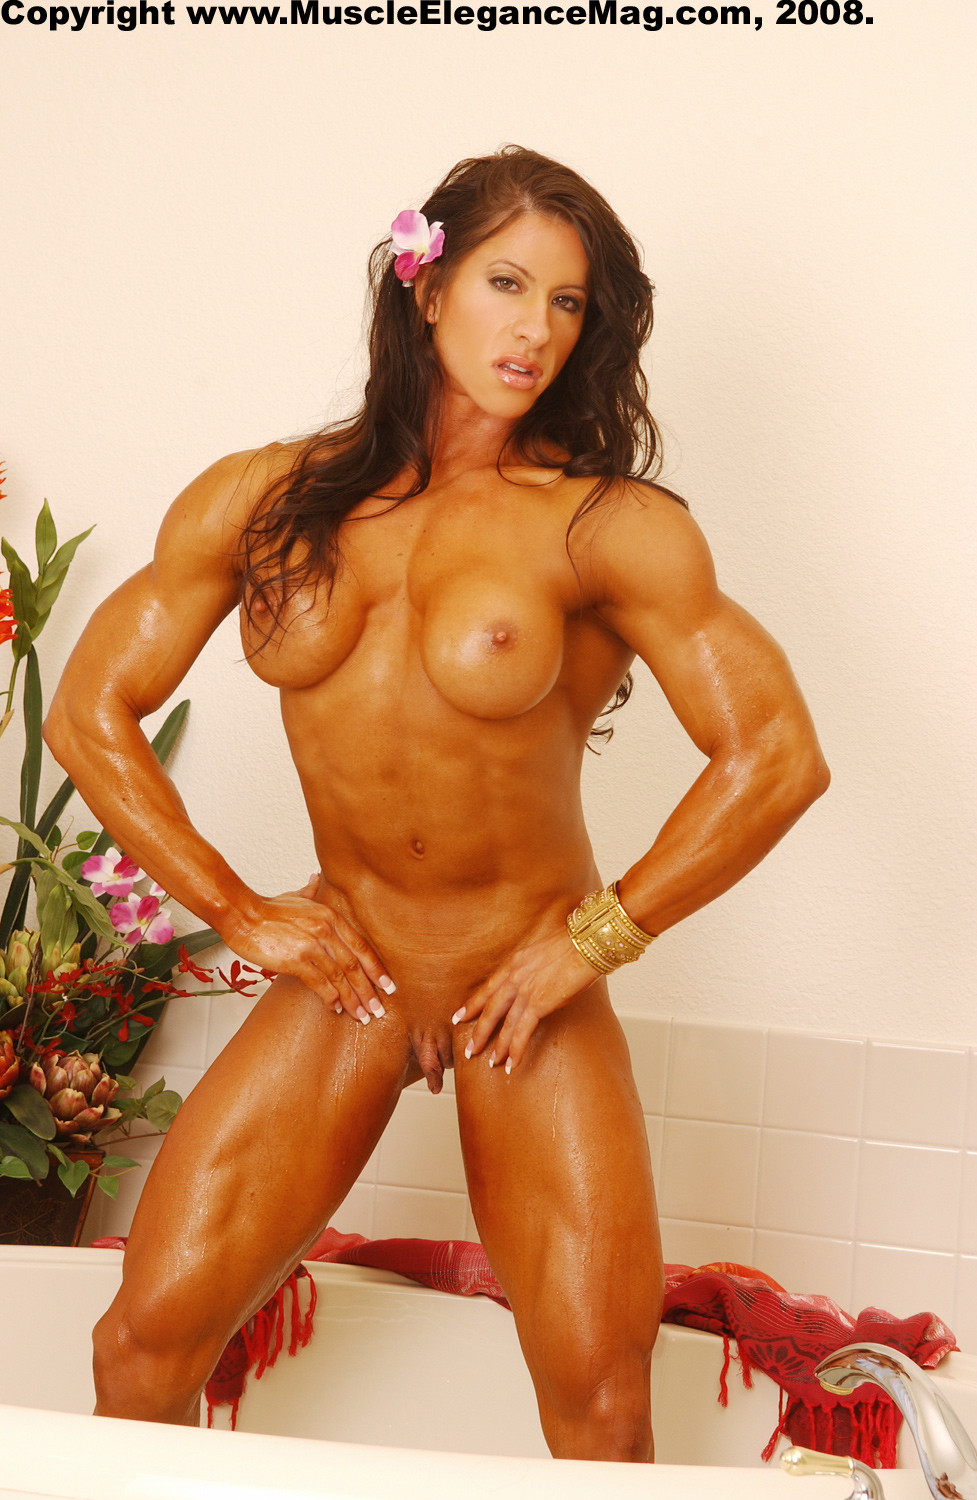 girls clit muscle Nude